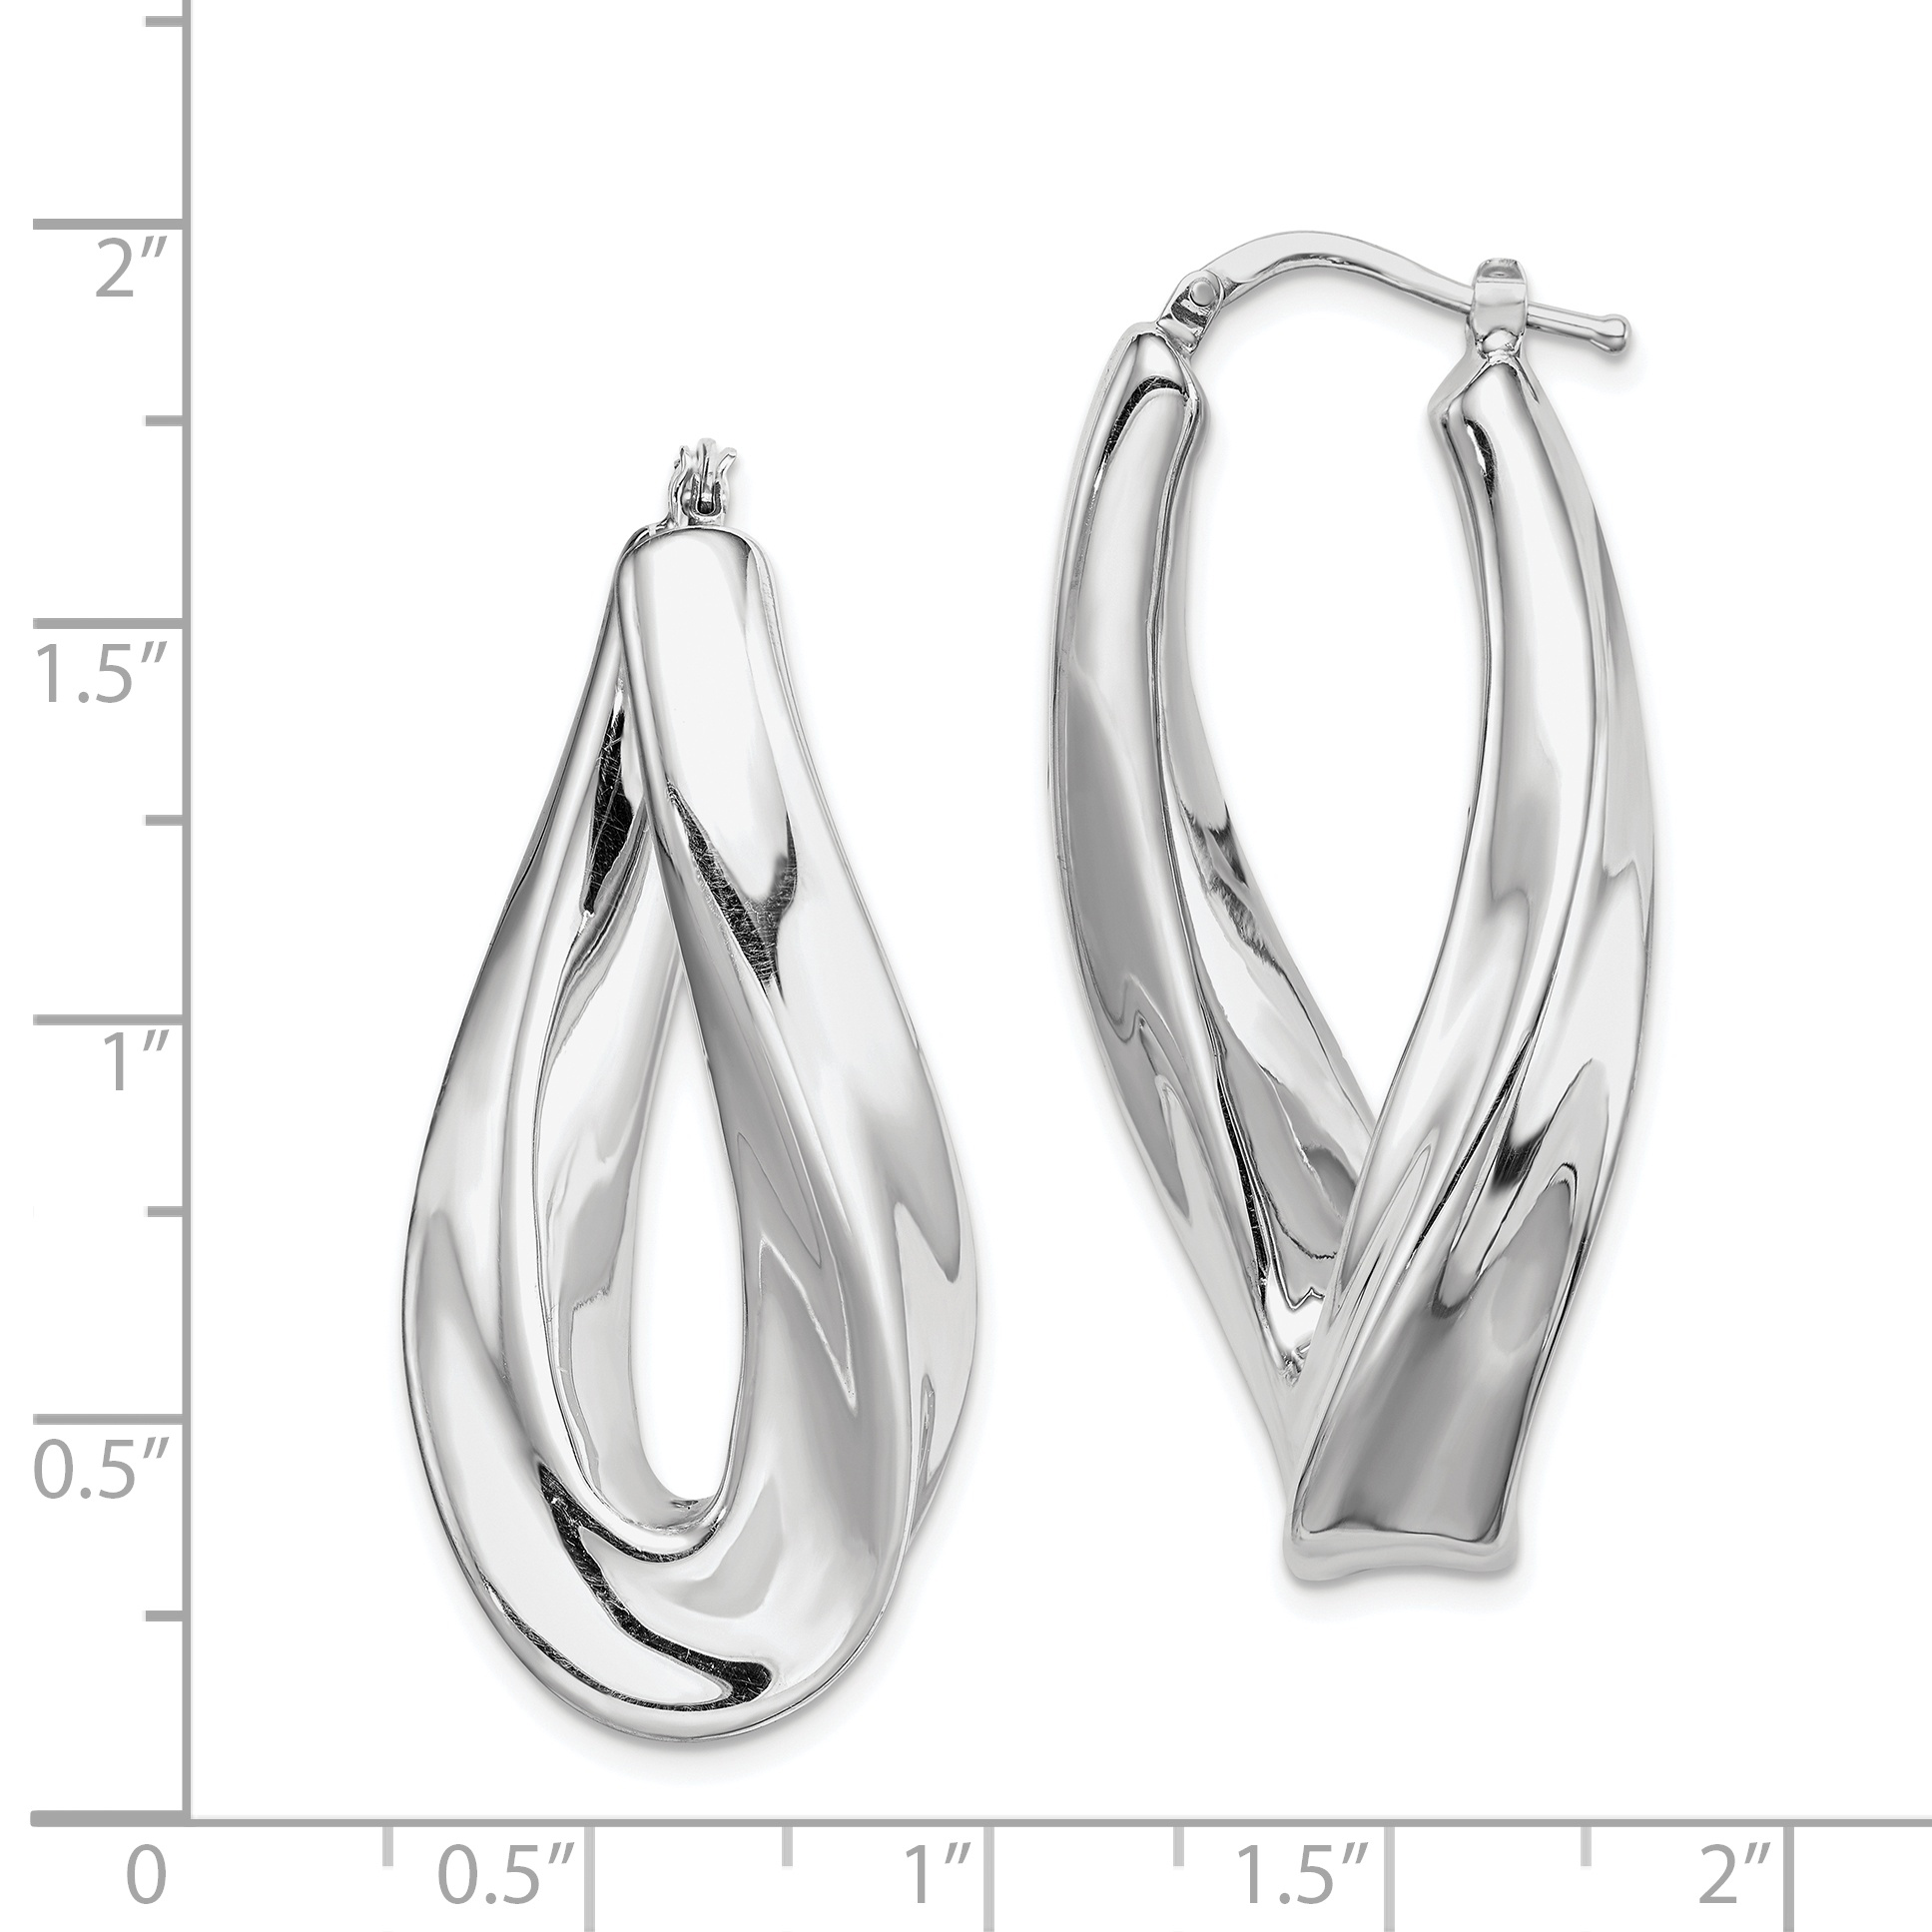 925 Sterling Silver Twisted Hoop Earrings Ear Hoops Set Fine Jewelry Gifts For Women For Her - image 1 of 2